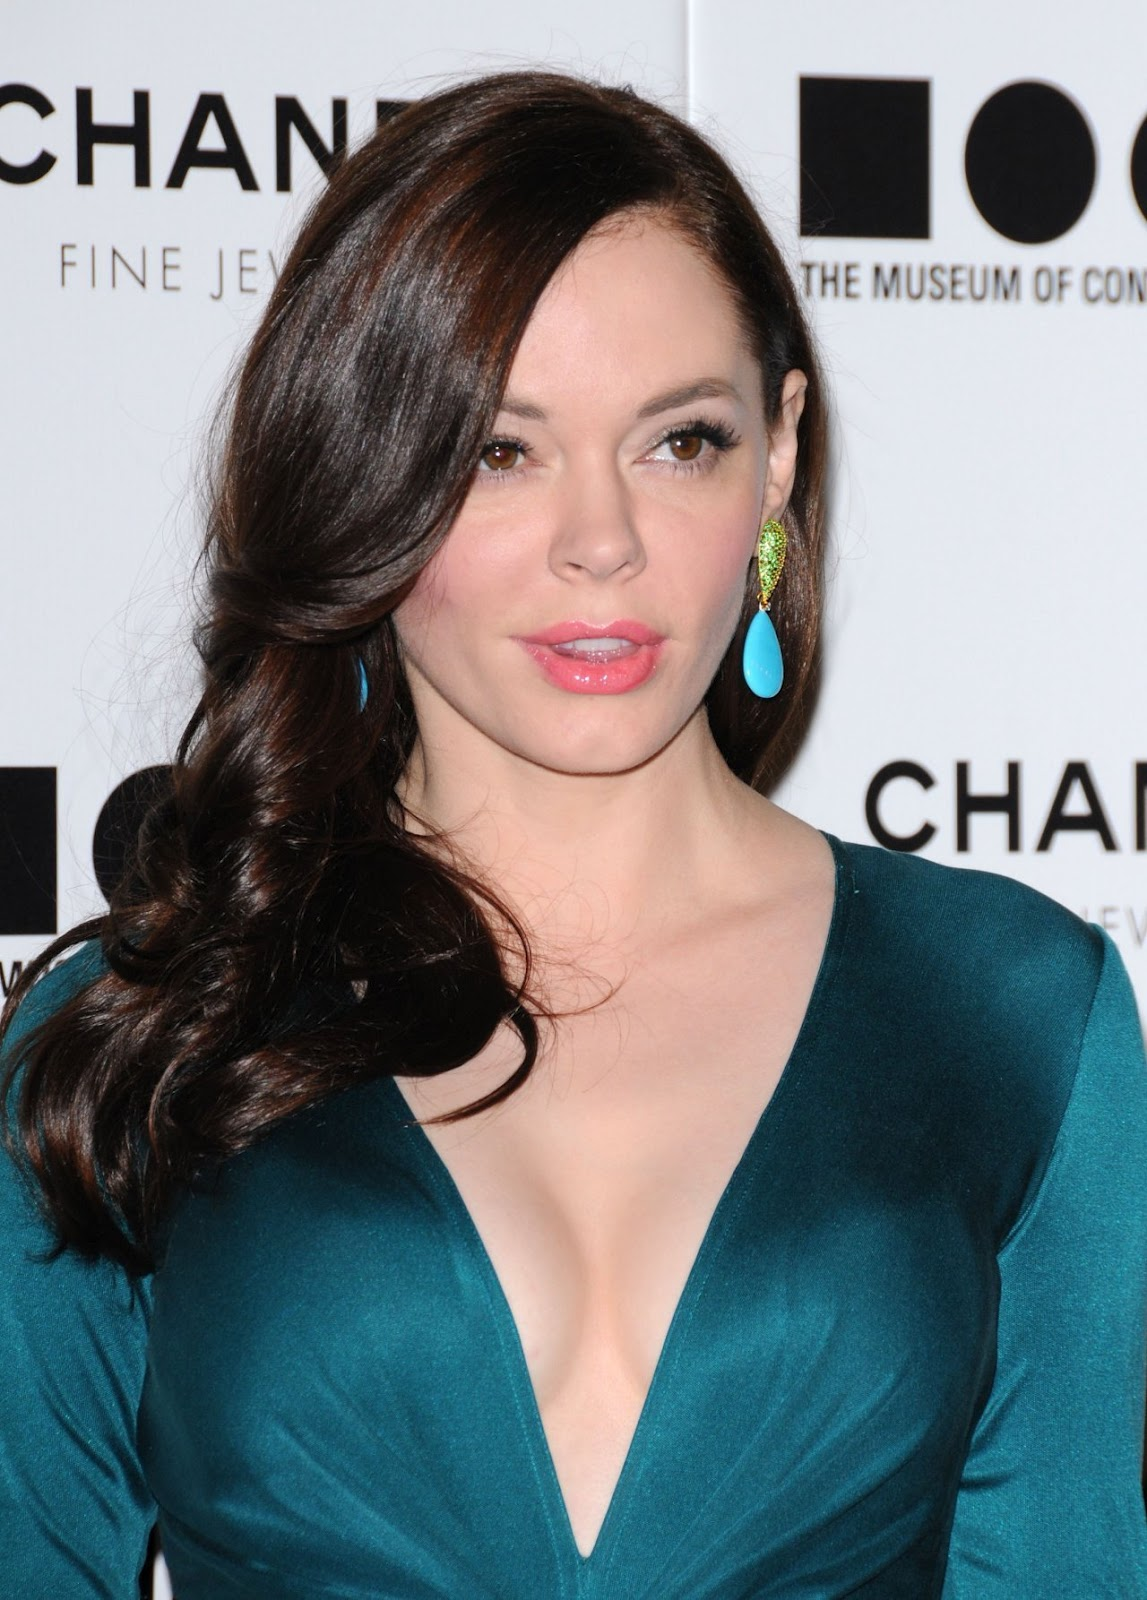 Cleavage Rose McGowan nudes (26 photos), Ass, Cleavage, Feet, braless 2019